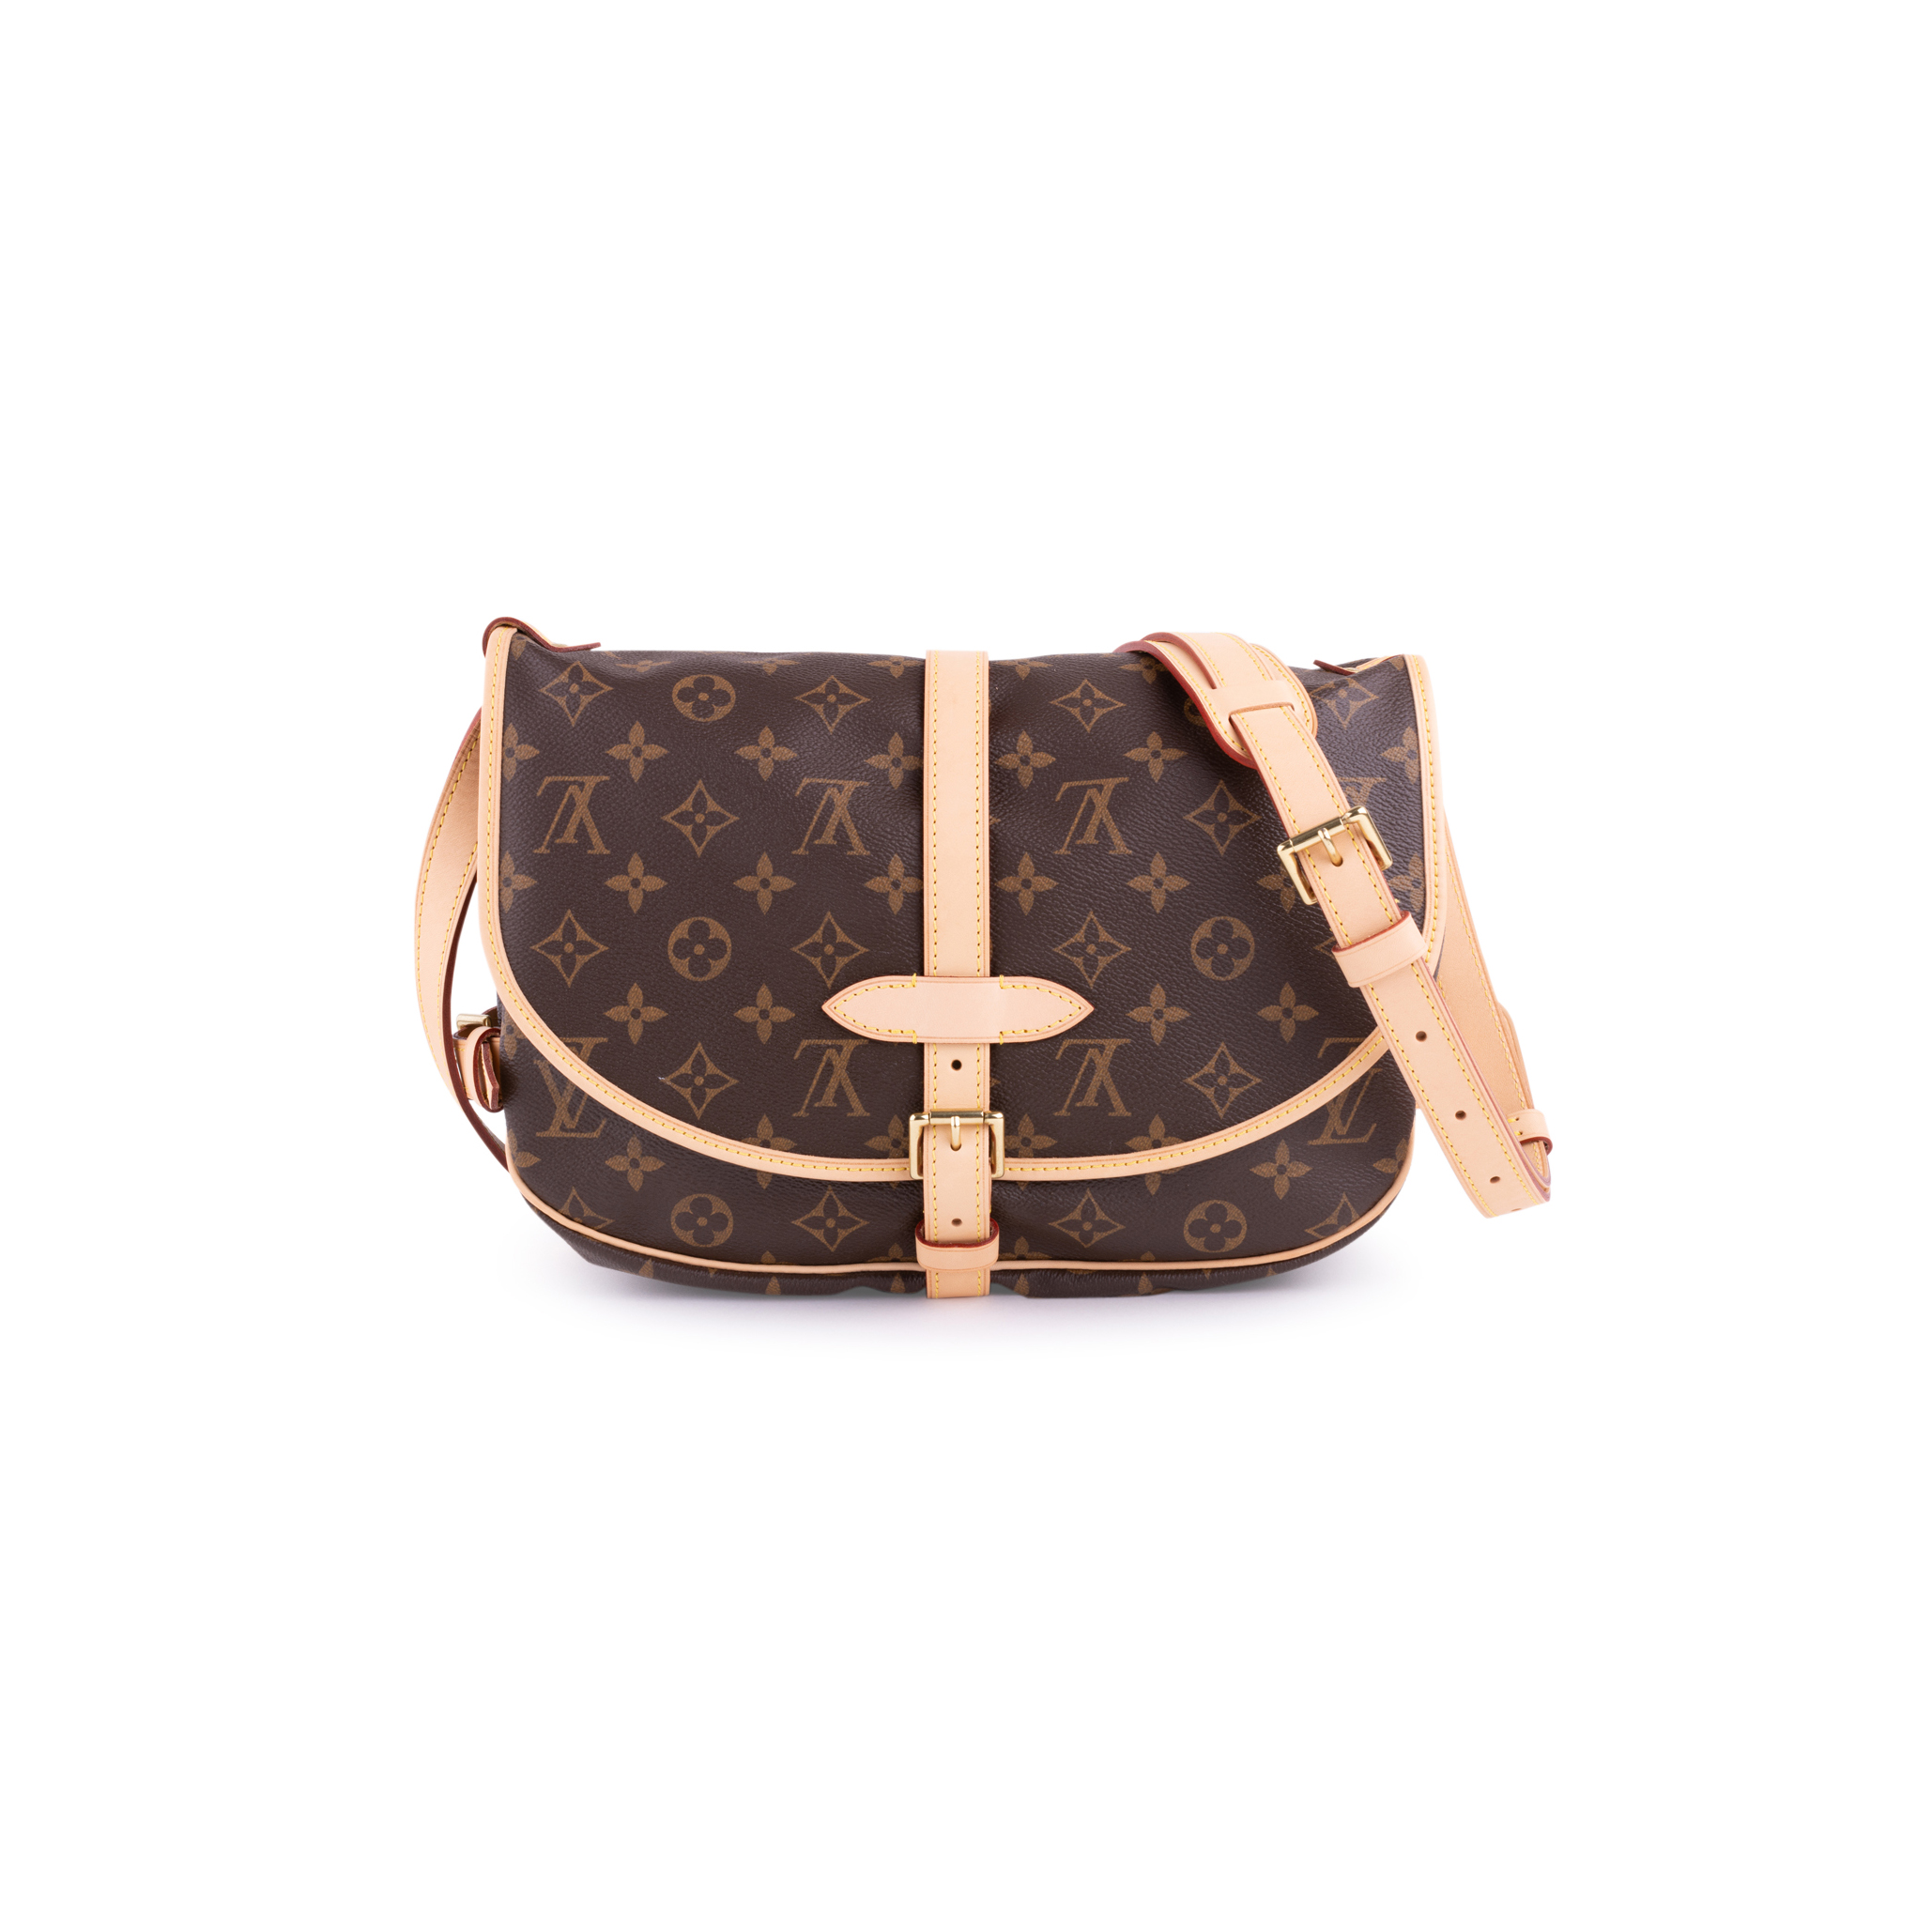 a59cc2d12d2c Authentic Second Hand Louis Vuitton Saumur MM Bag (PSS-627-00001 ...